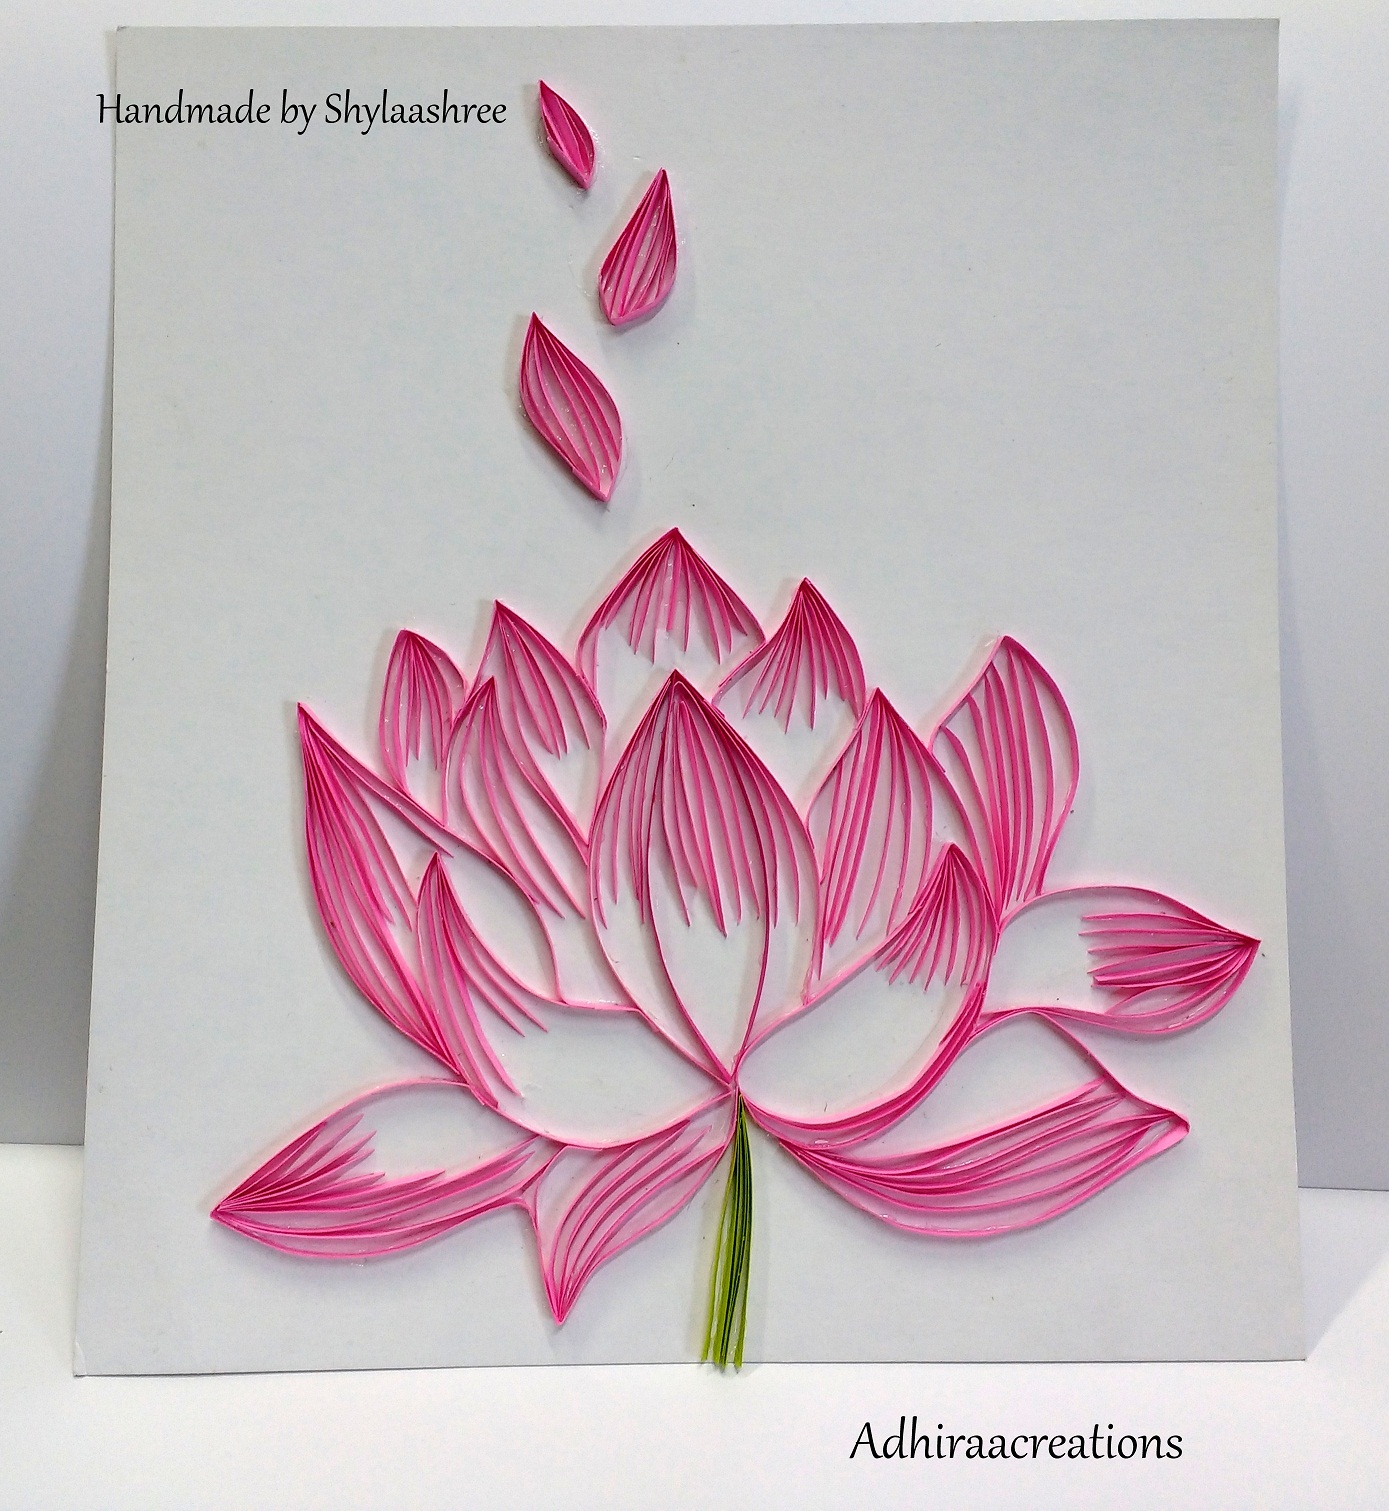 Adhiraacreations quilled lotus lotus the national flower of india emerges from muddy waters but un spoilt and pure it is considered to represent a wise and spiritually enlightened izmirmasajfo